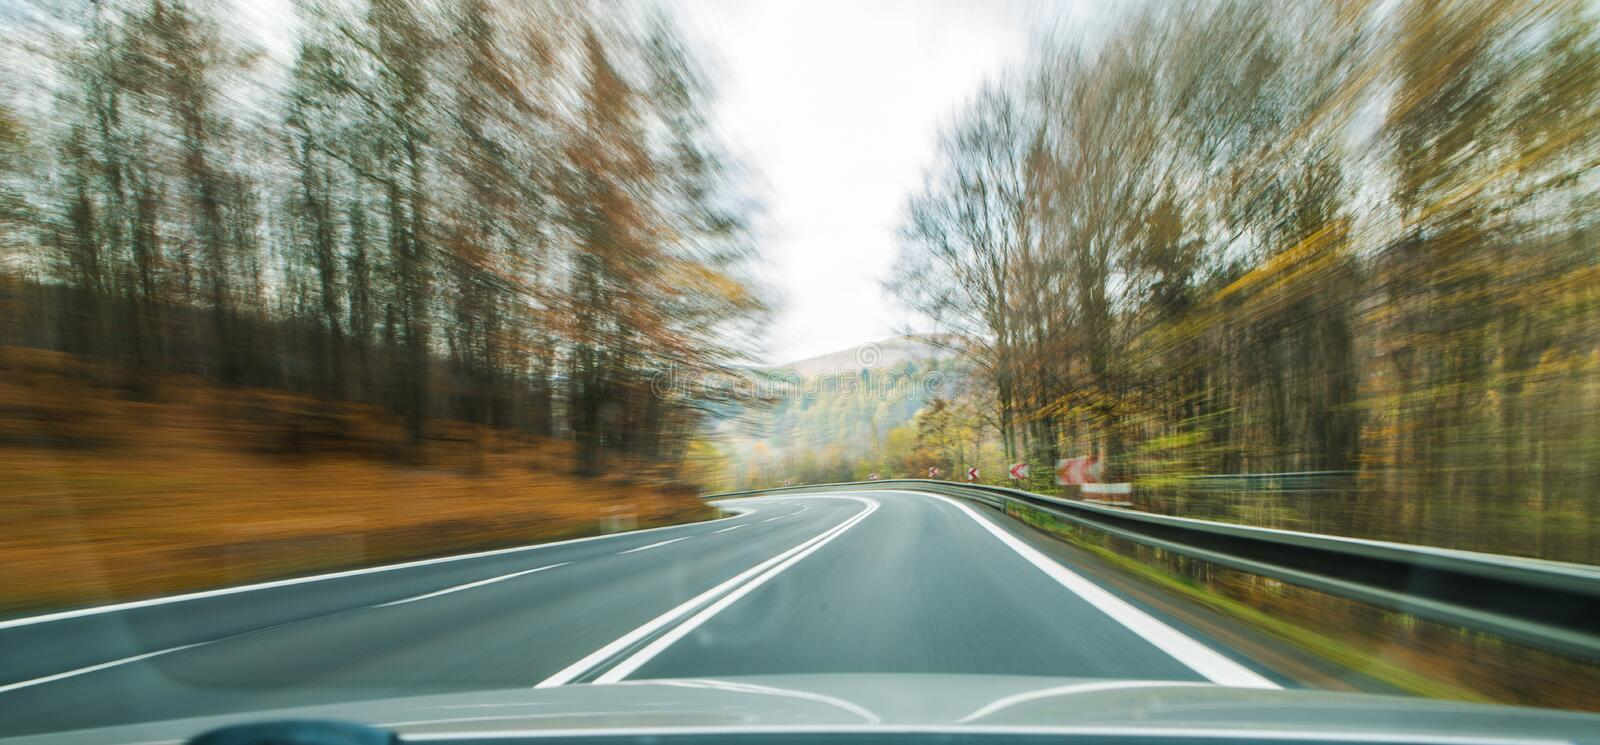 Front view of the highway road passing the country side inside the fast car long exposure shoot royalty free stock photo